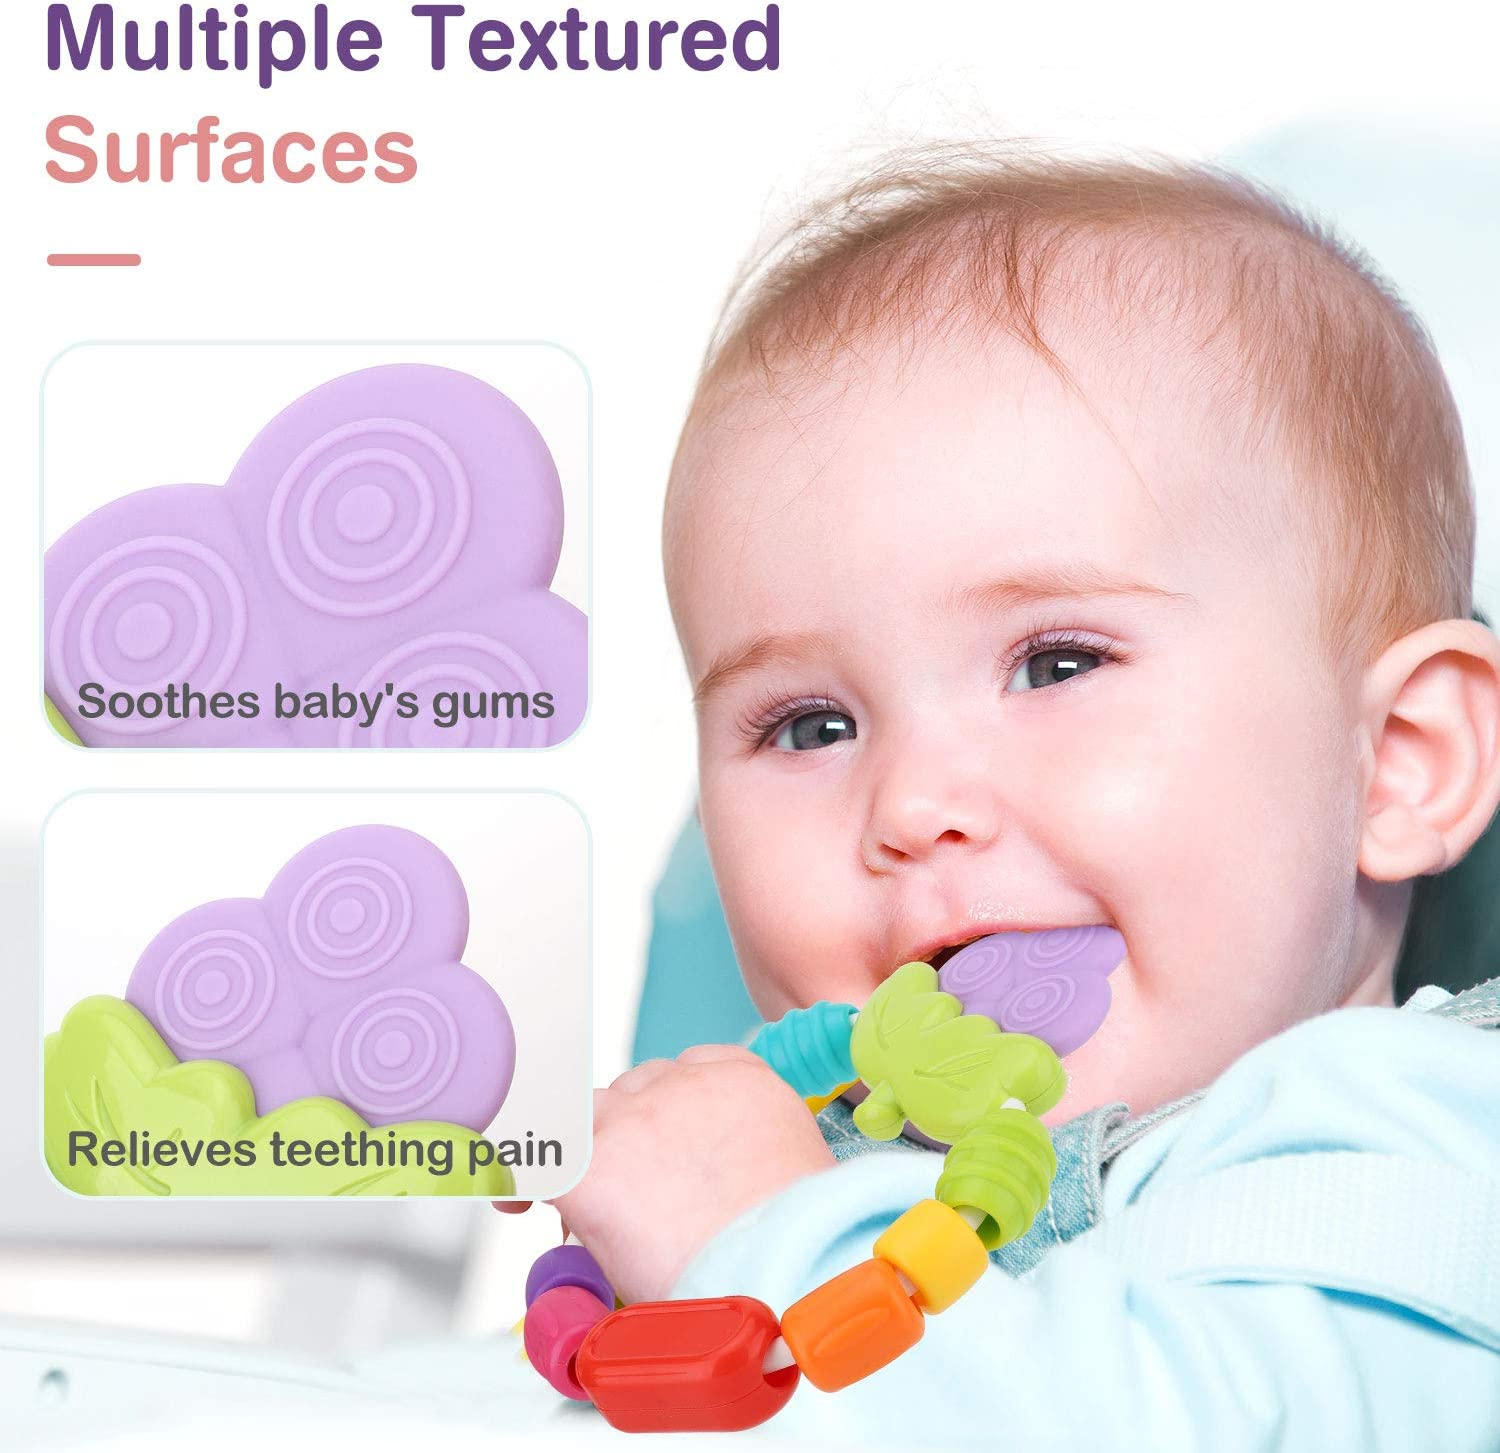 Grape Easy to Hold Zooawa Baby Teether Soft Teething Toys for Pain Relief BPA-Free Turnable Beaded Teether Toy for Infants and Toddlers